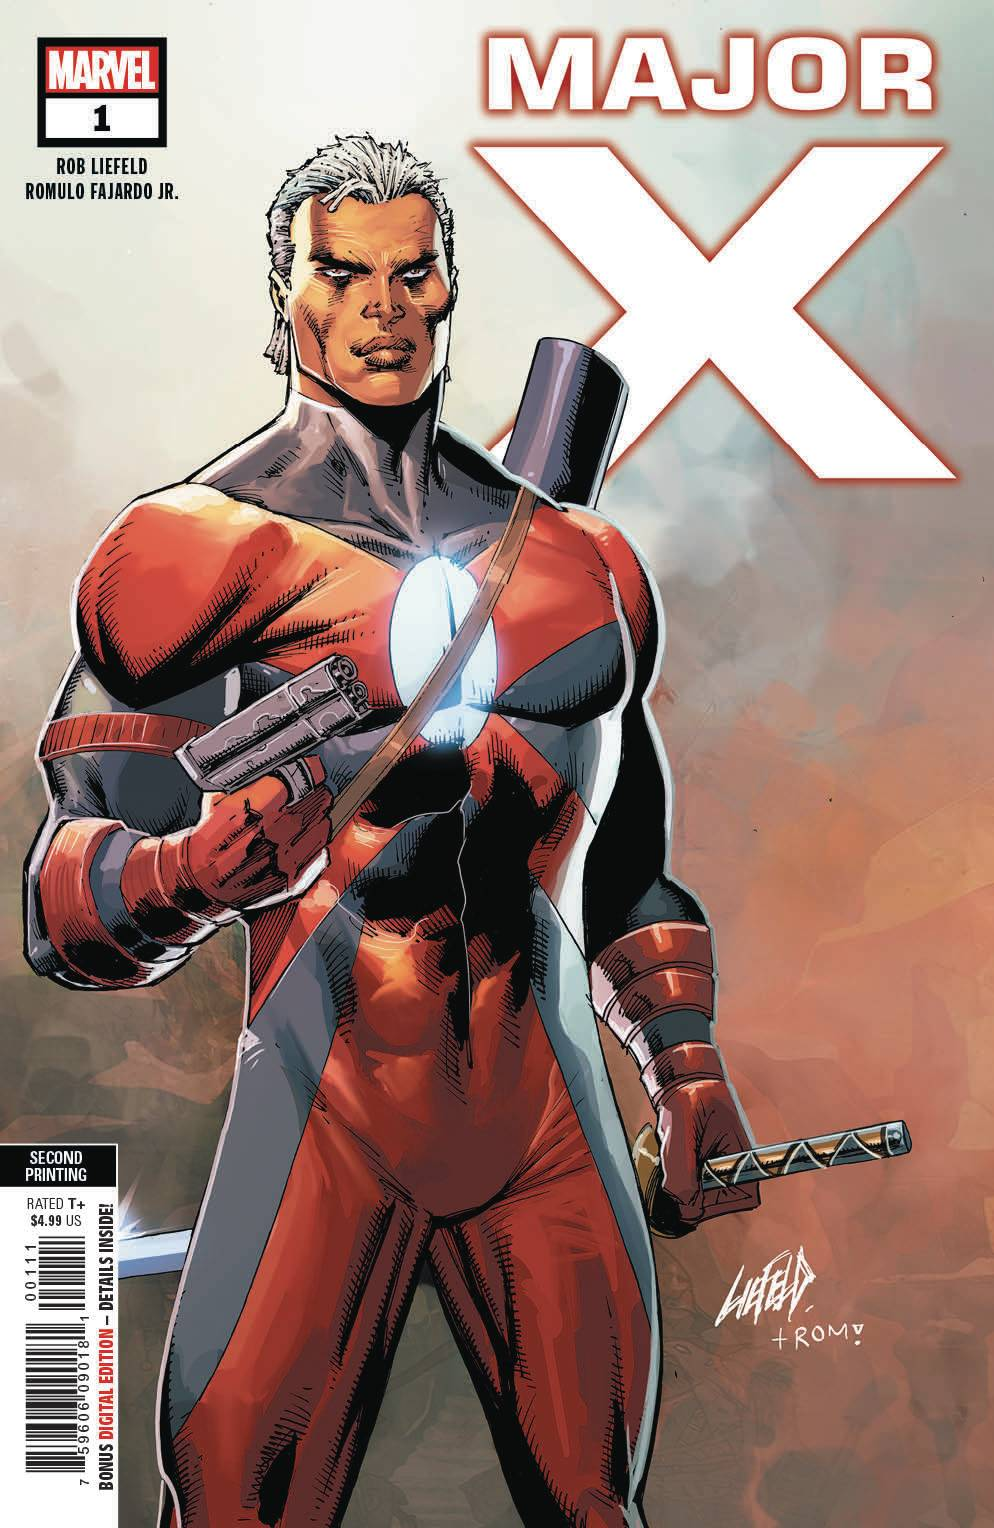 MAJOR X #1 (OF 6) 2ND PTG LIEFELD VAR.jpg